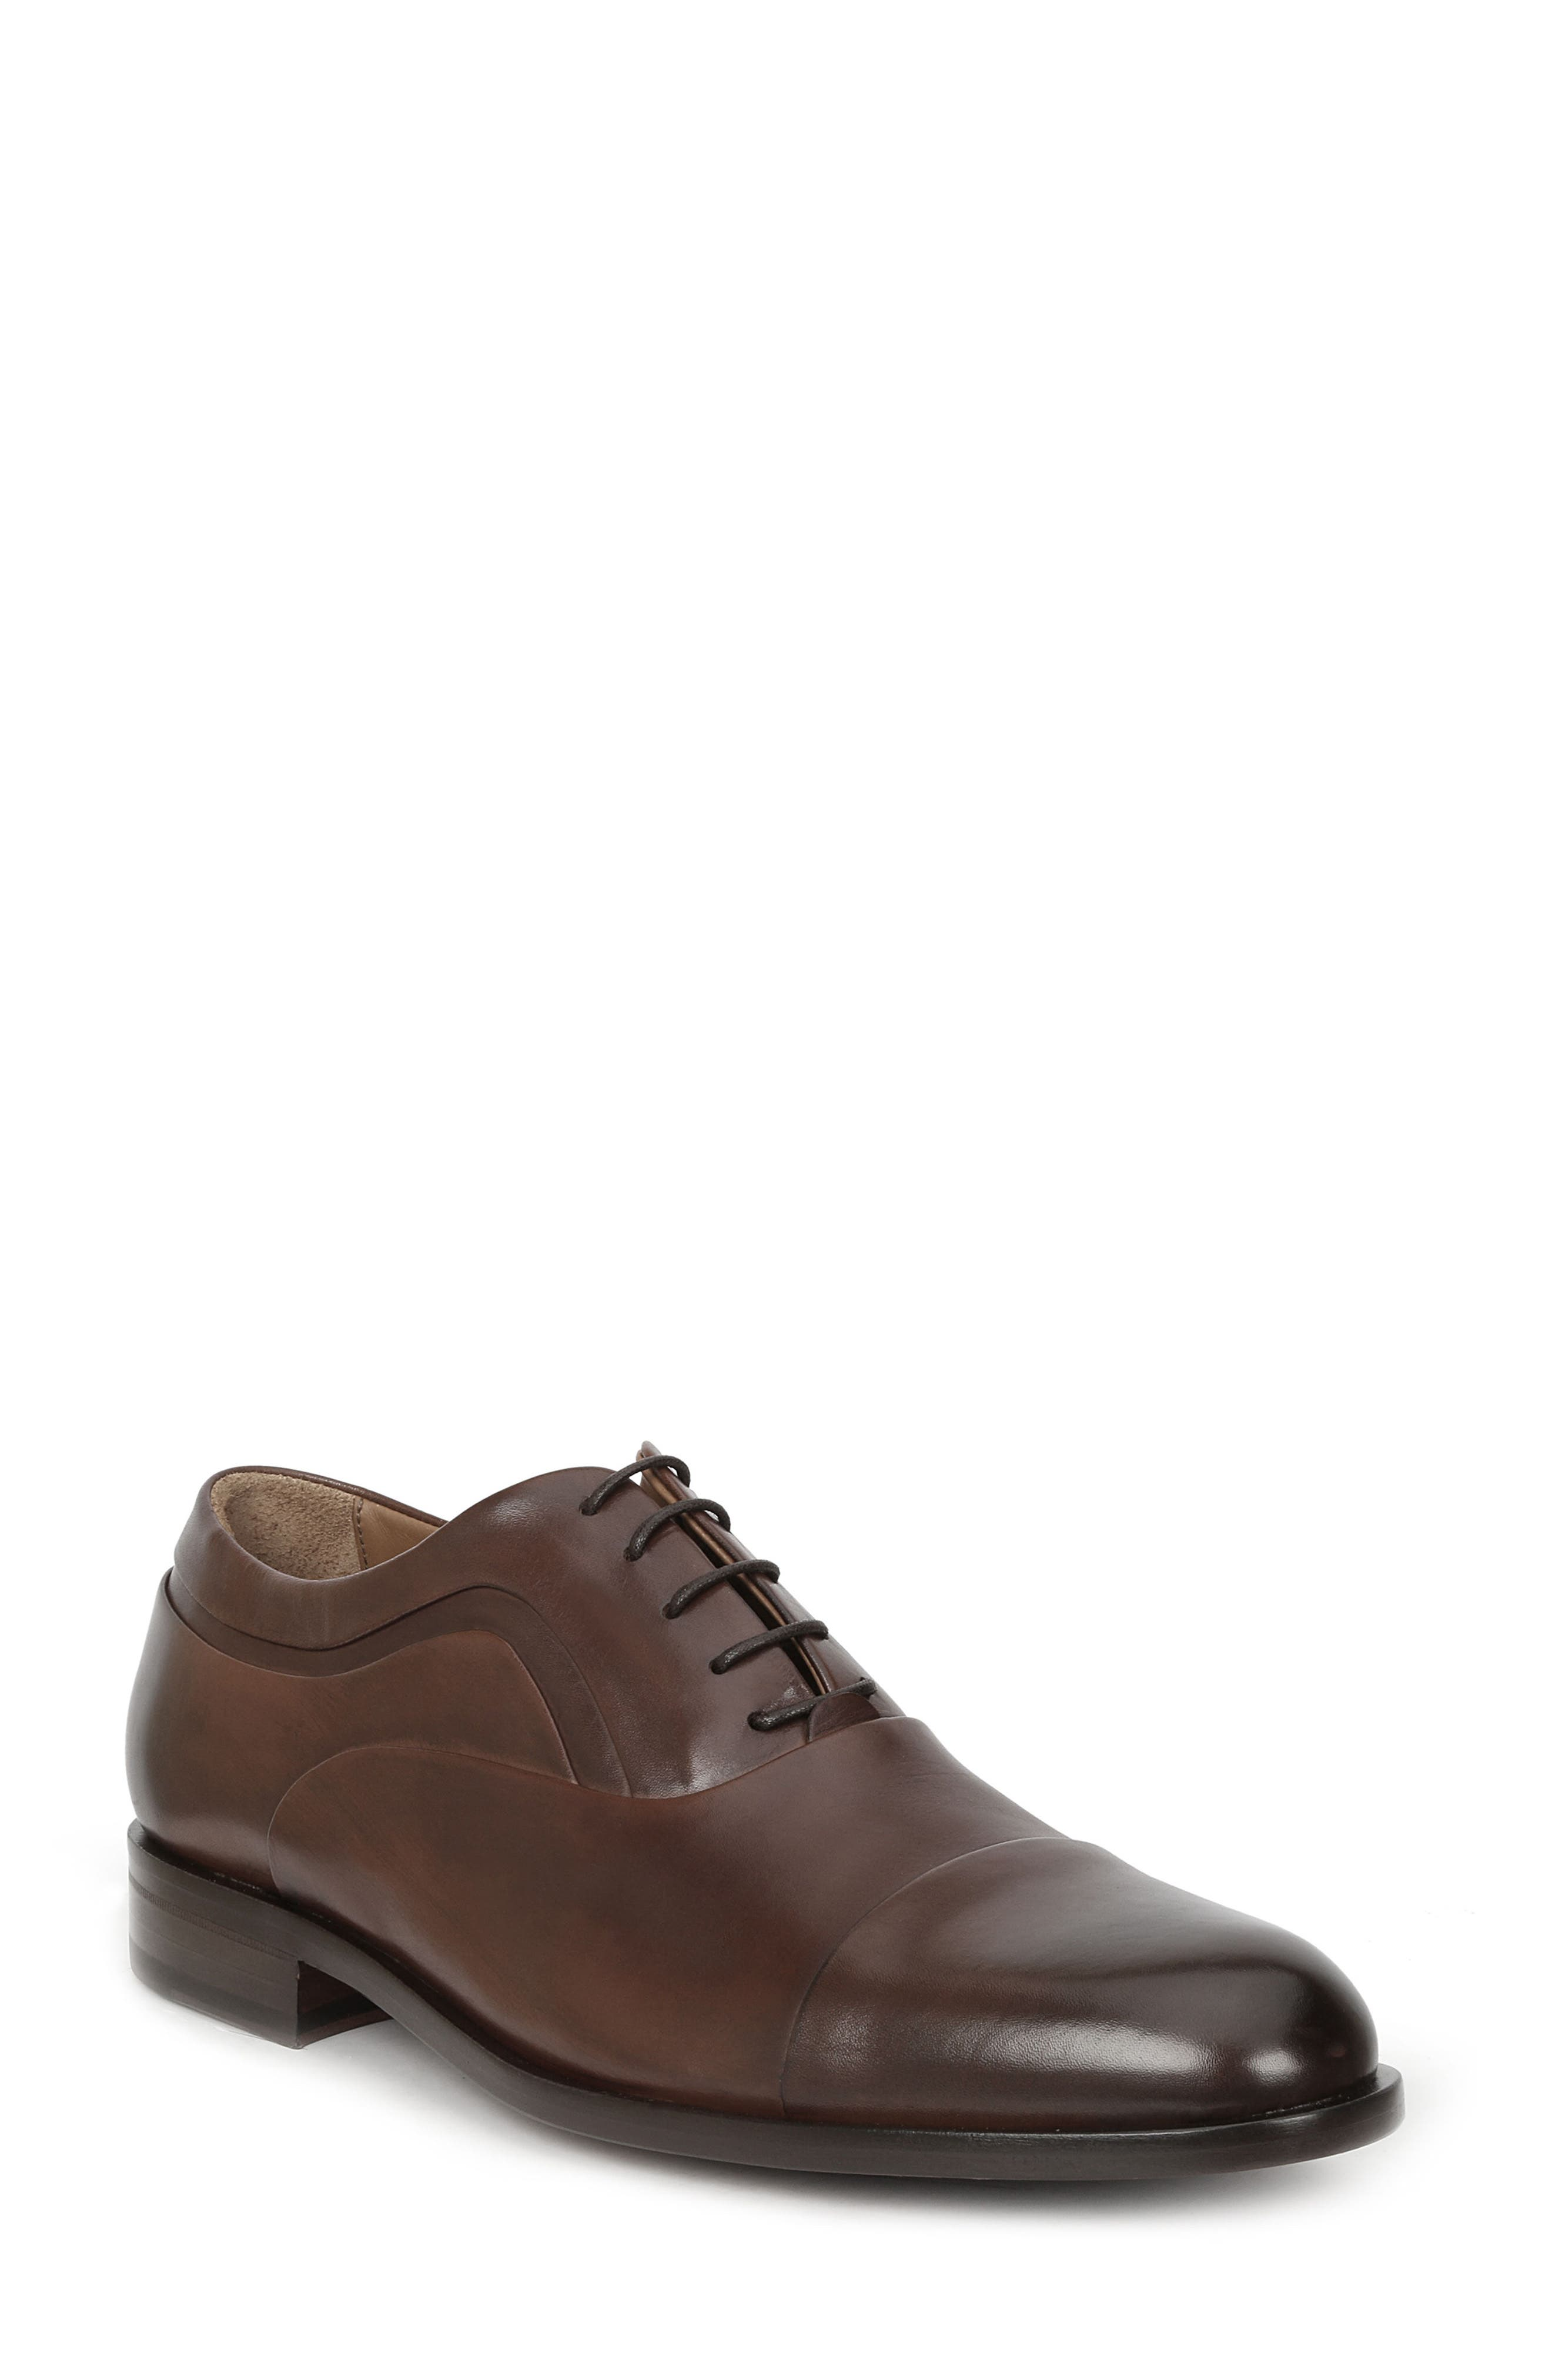 Sassiolo Leather Cap Toe Oxfords in Brown